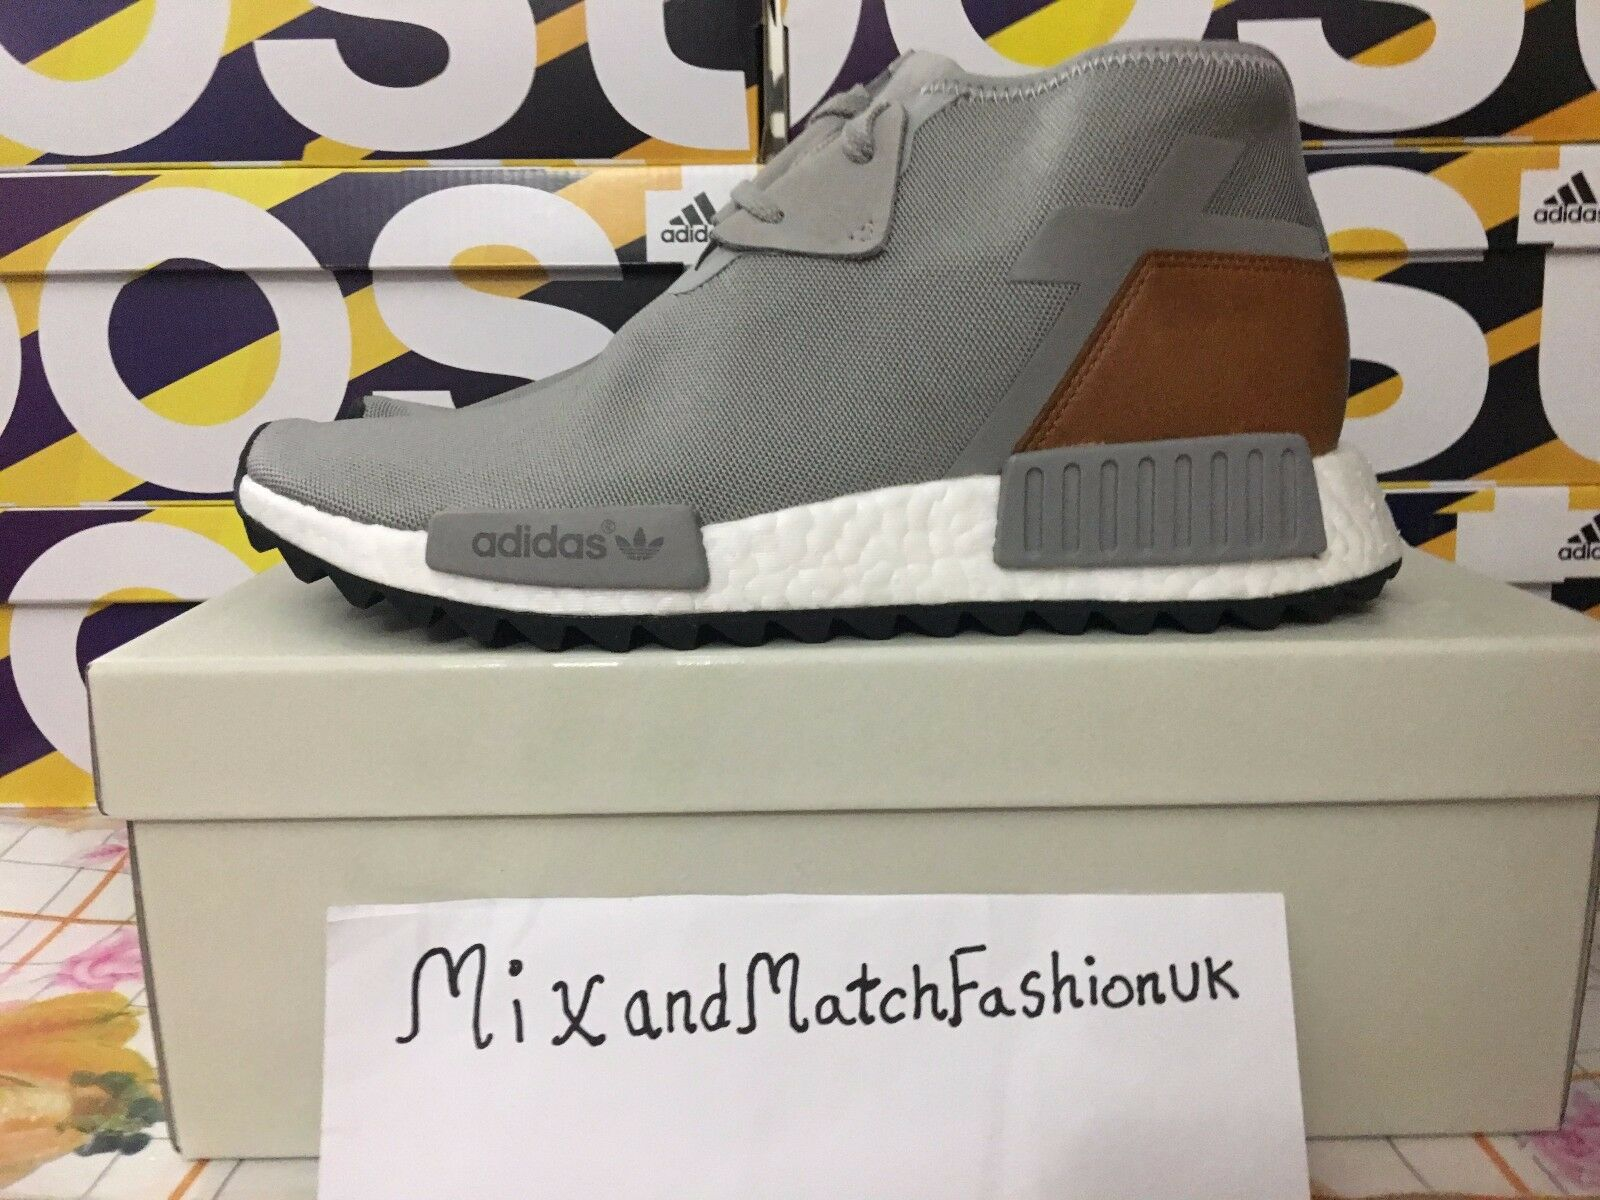 Adidas NMD C1 TR Chukka Ultra Boost Solid  Gris  S818358 EU 42 US 8.5